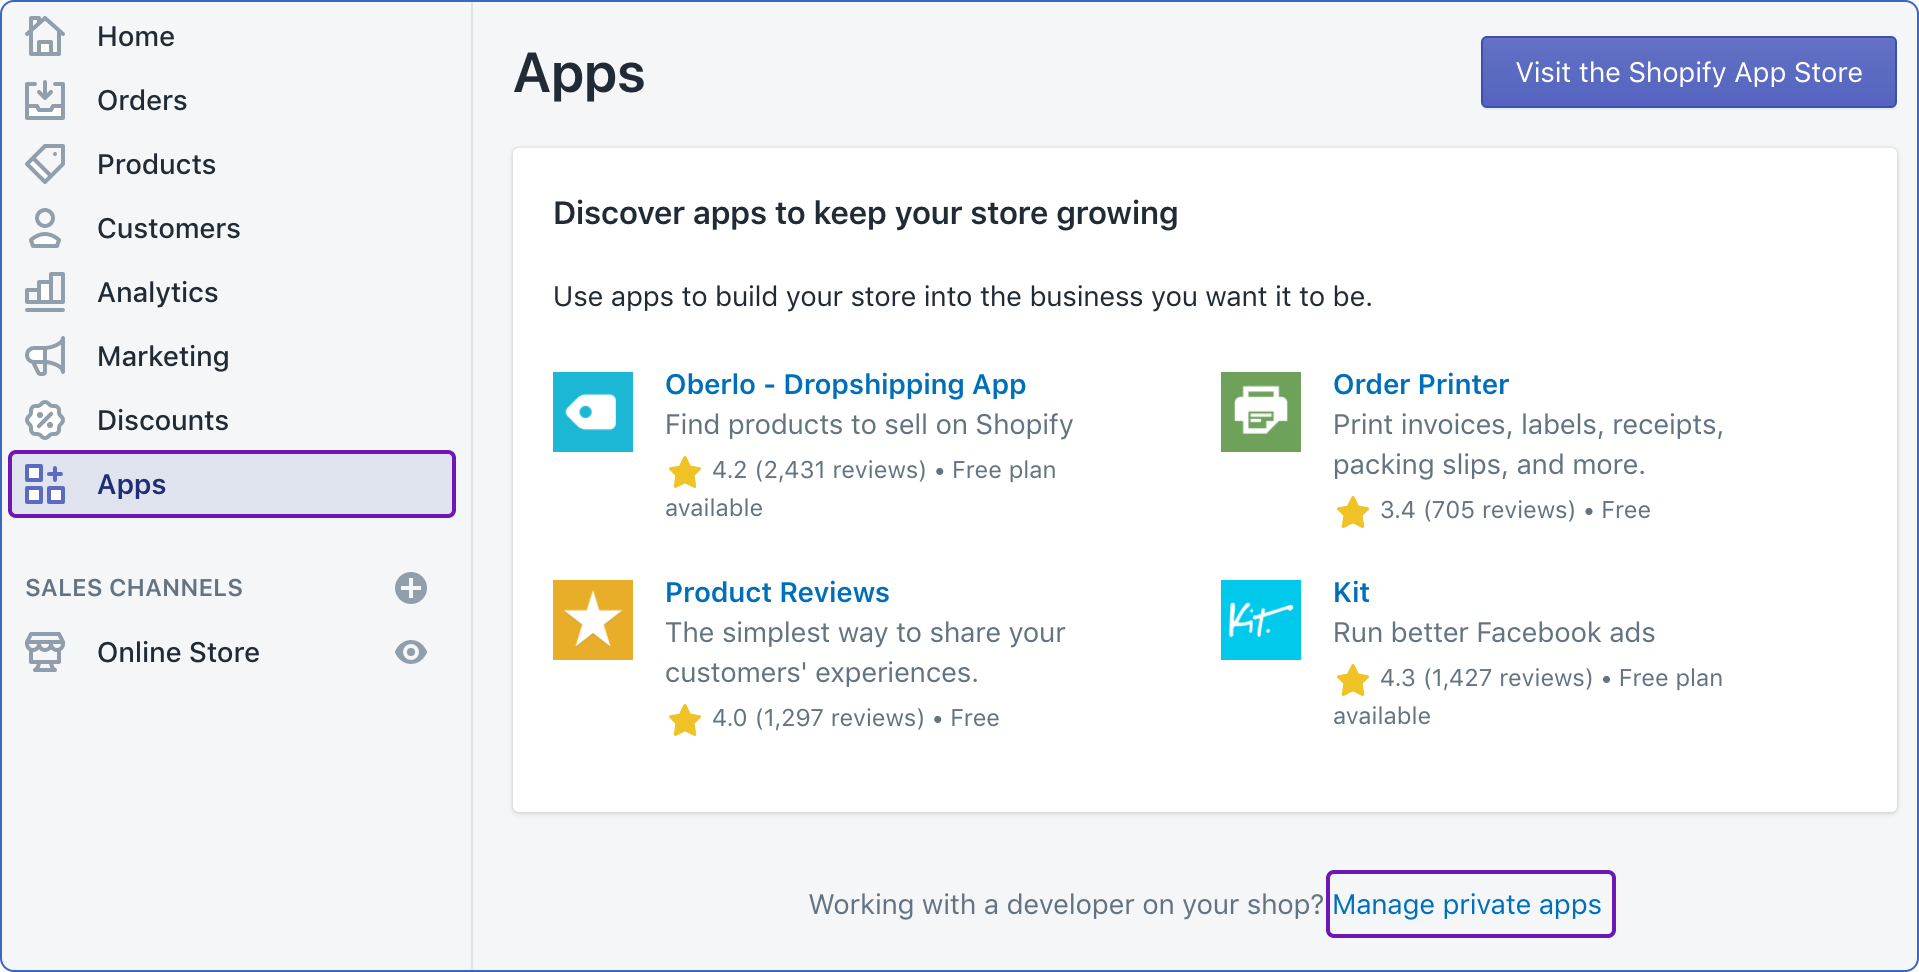 Manage private apps in Shopify